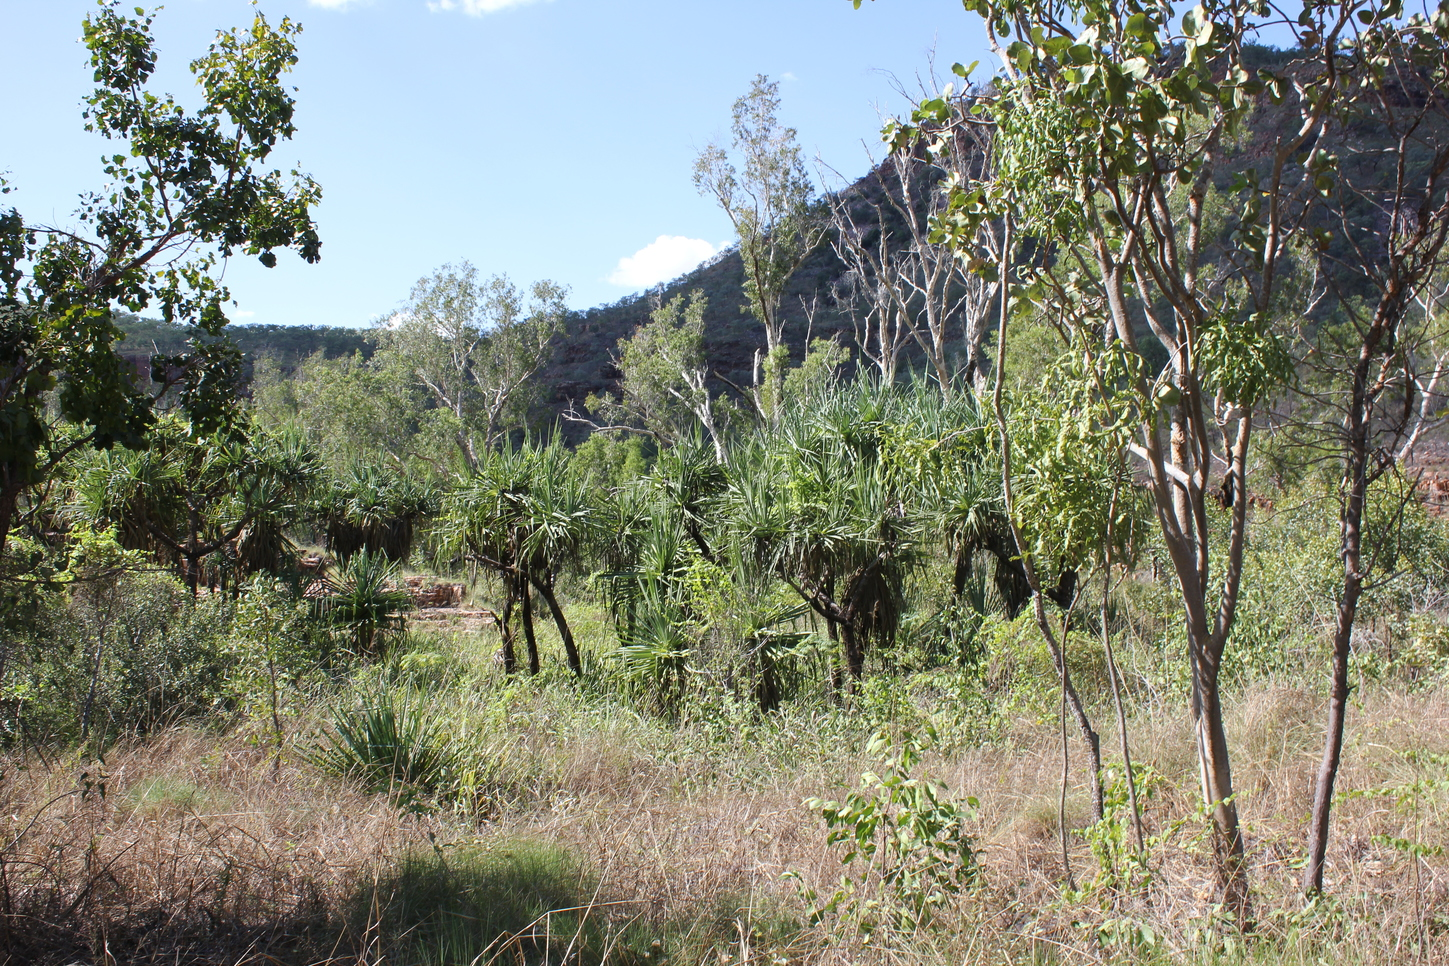 Forests equal to 60pc of Australian landmass discovered using new tool